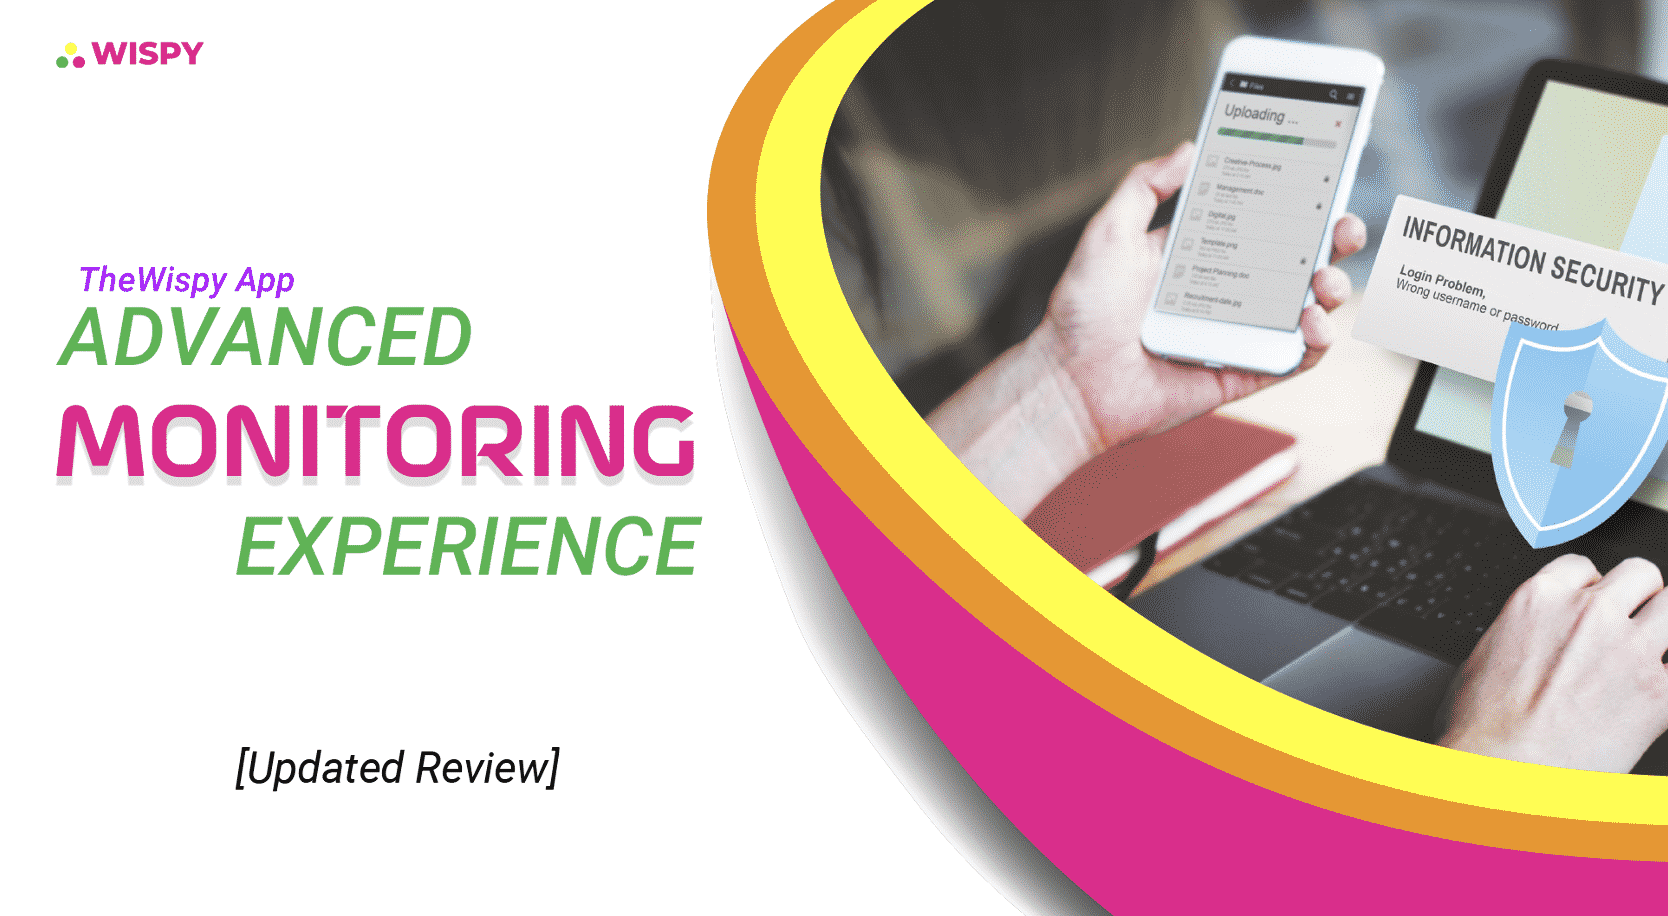 TheWiSpy Advanced Monitoring Experience - Updated Review